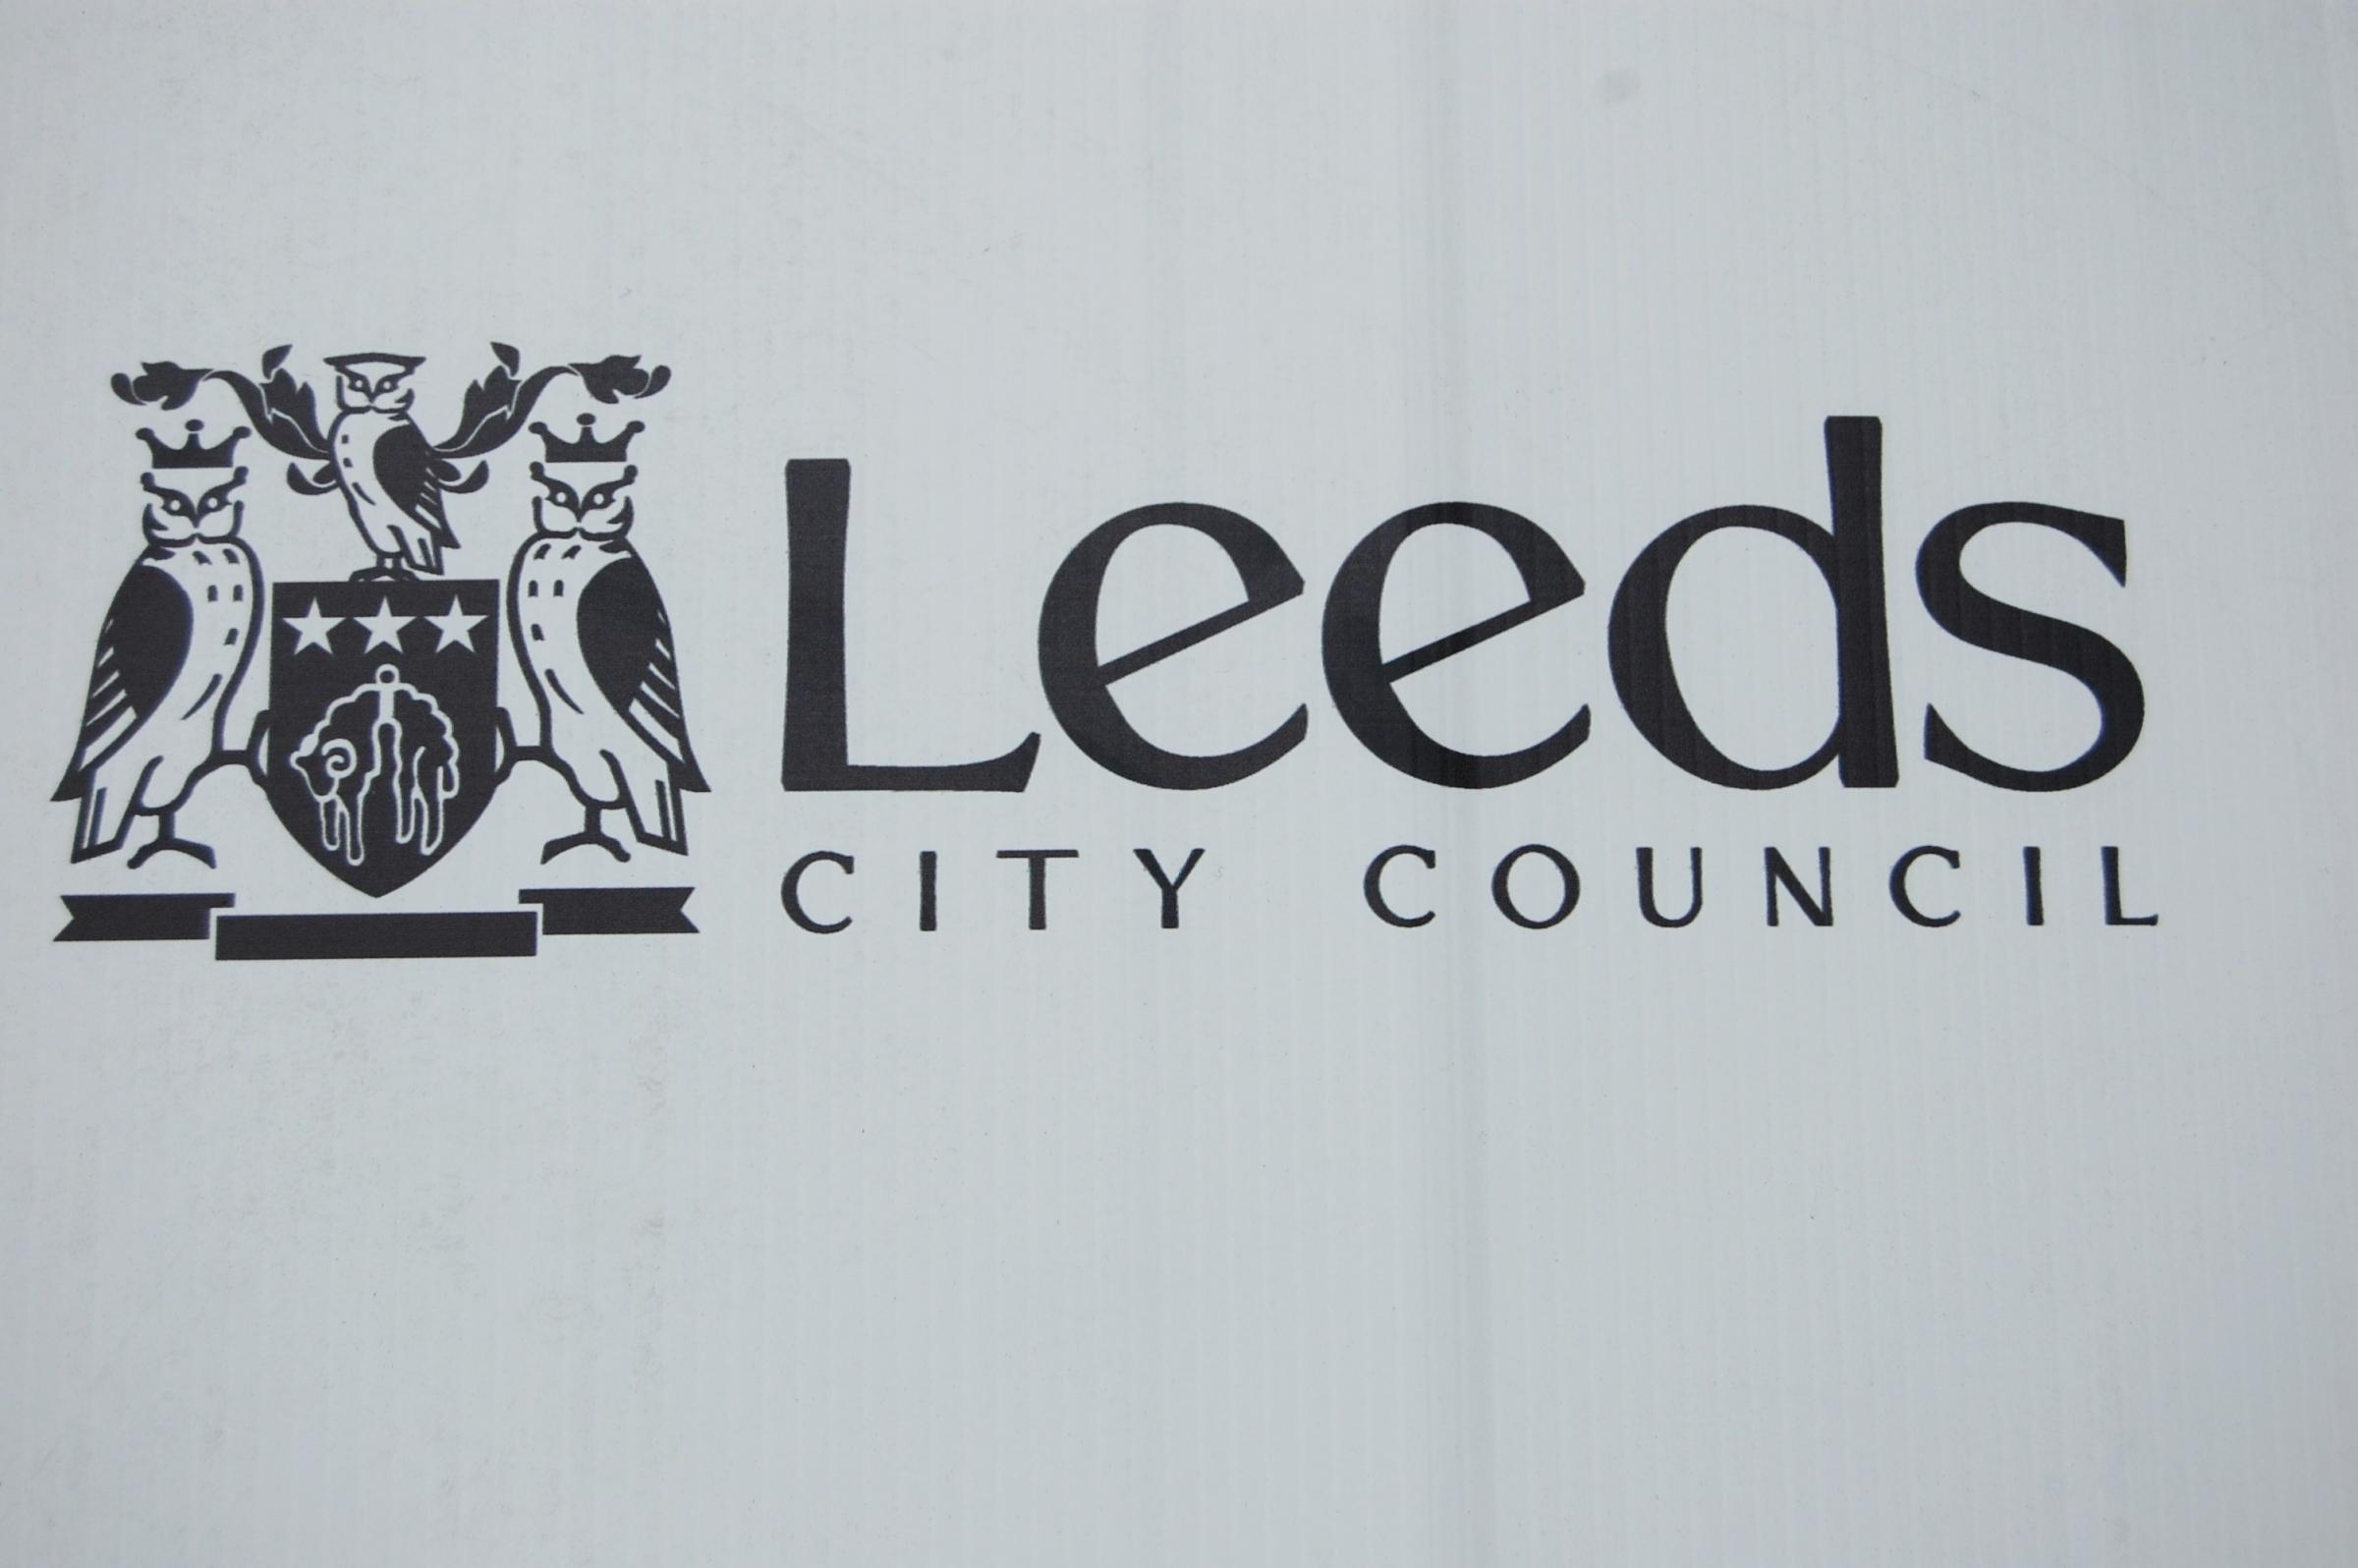 Leeds City Council is partnering with The Luna Cinema to stage the open air events.